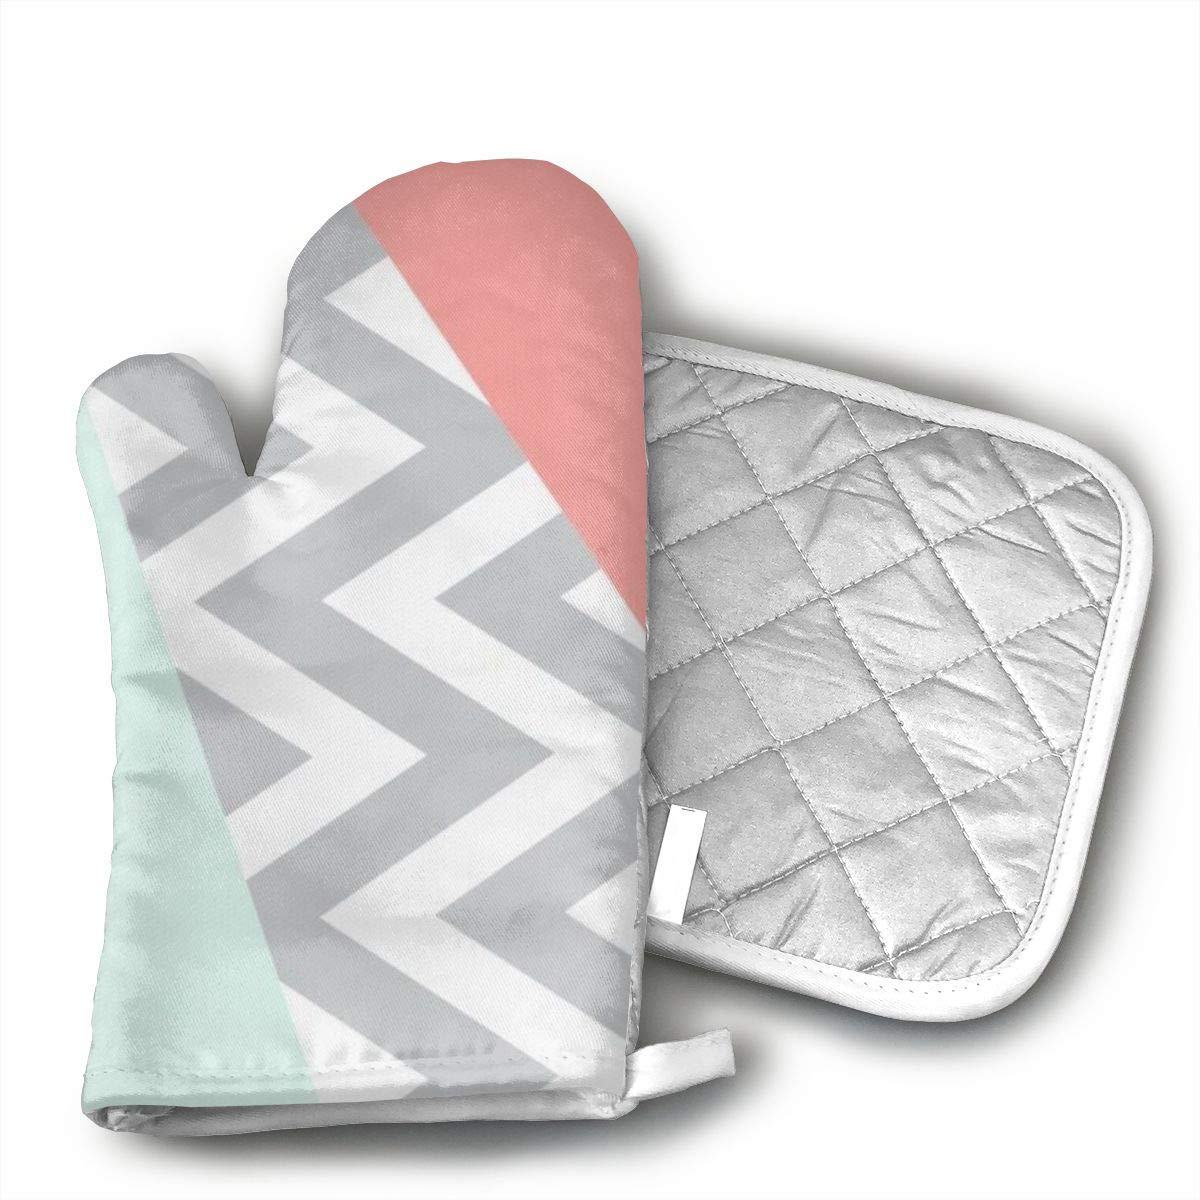 STRWBfhk Original Mint & Coral Chevron Block Oven Mitts, Cook Mittens Protect Your Hand During Baking Doing BBQ